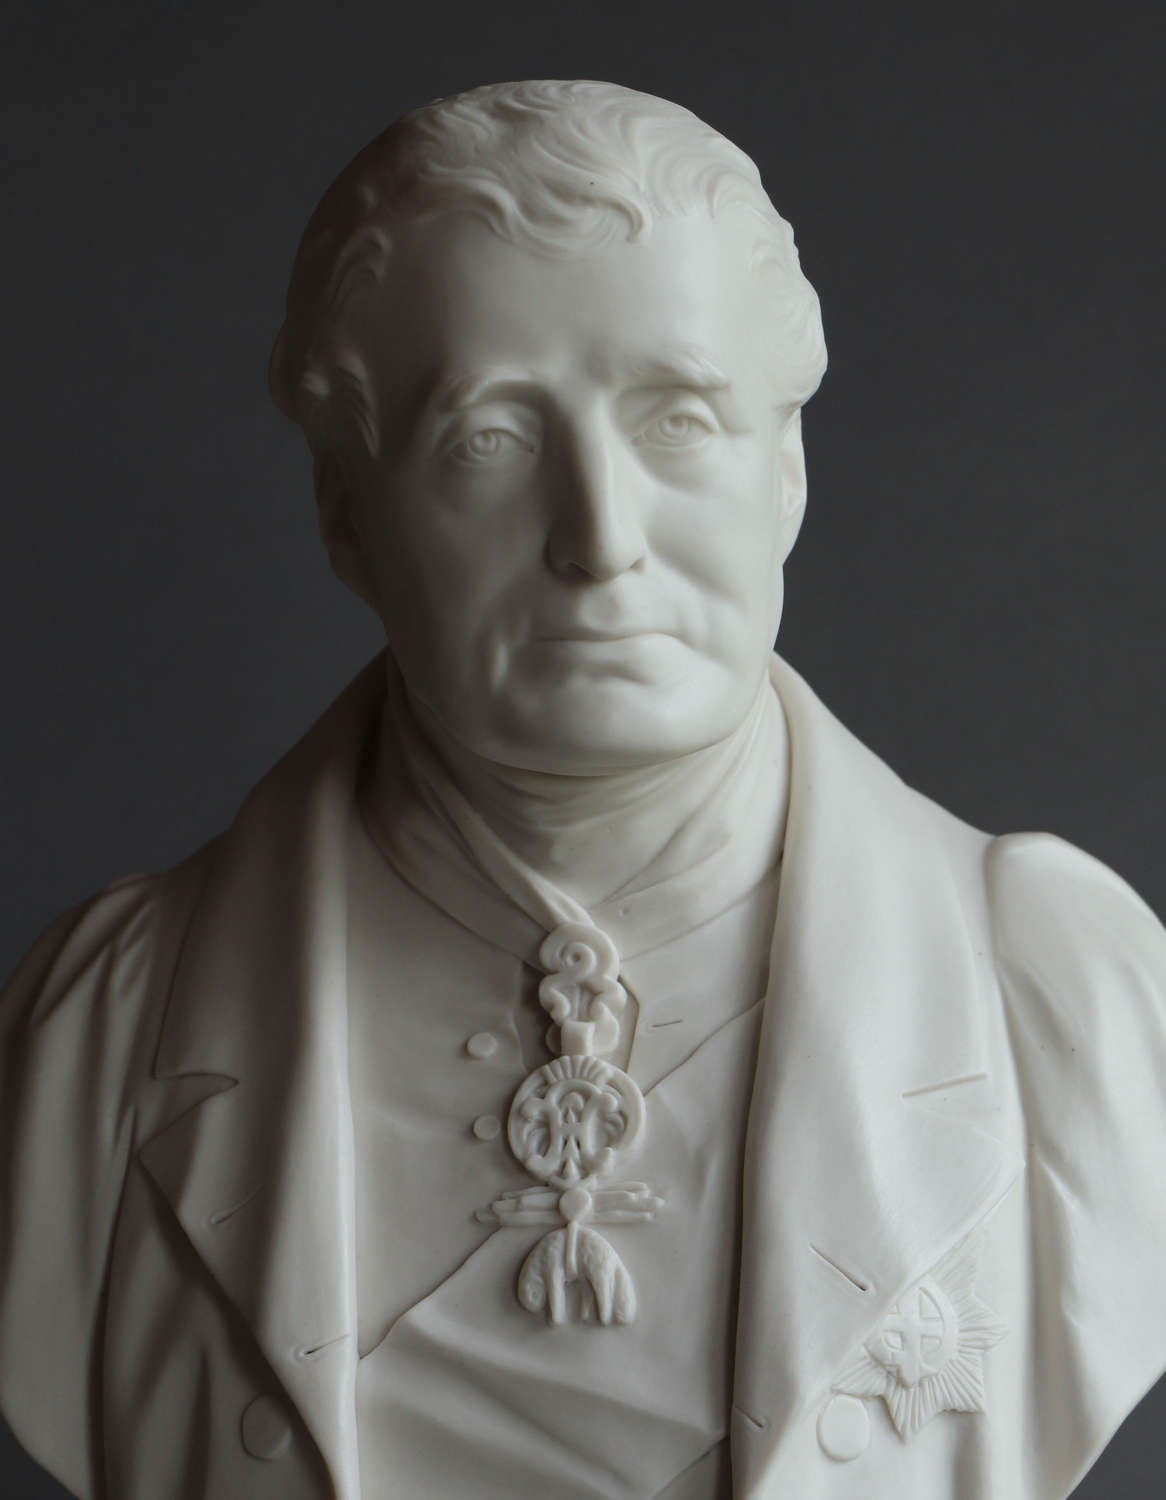 Parian bust of the Duke of Wellington, probably Coalbrookdale